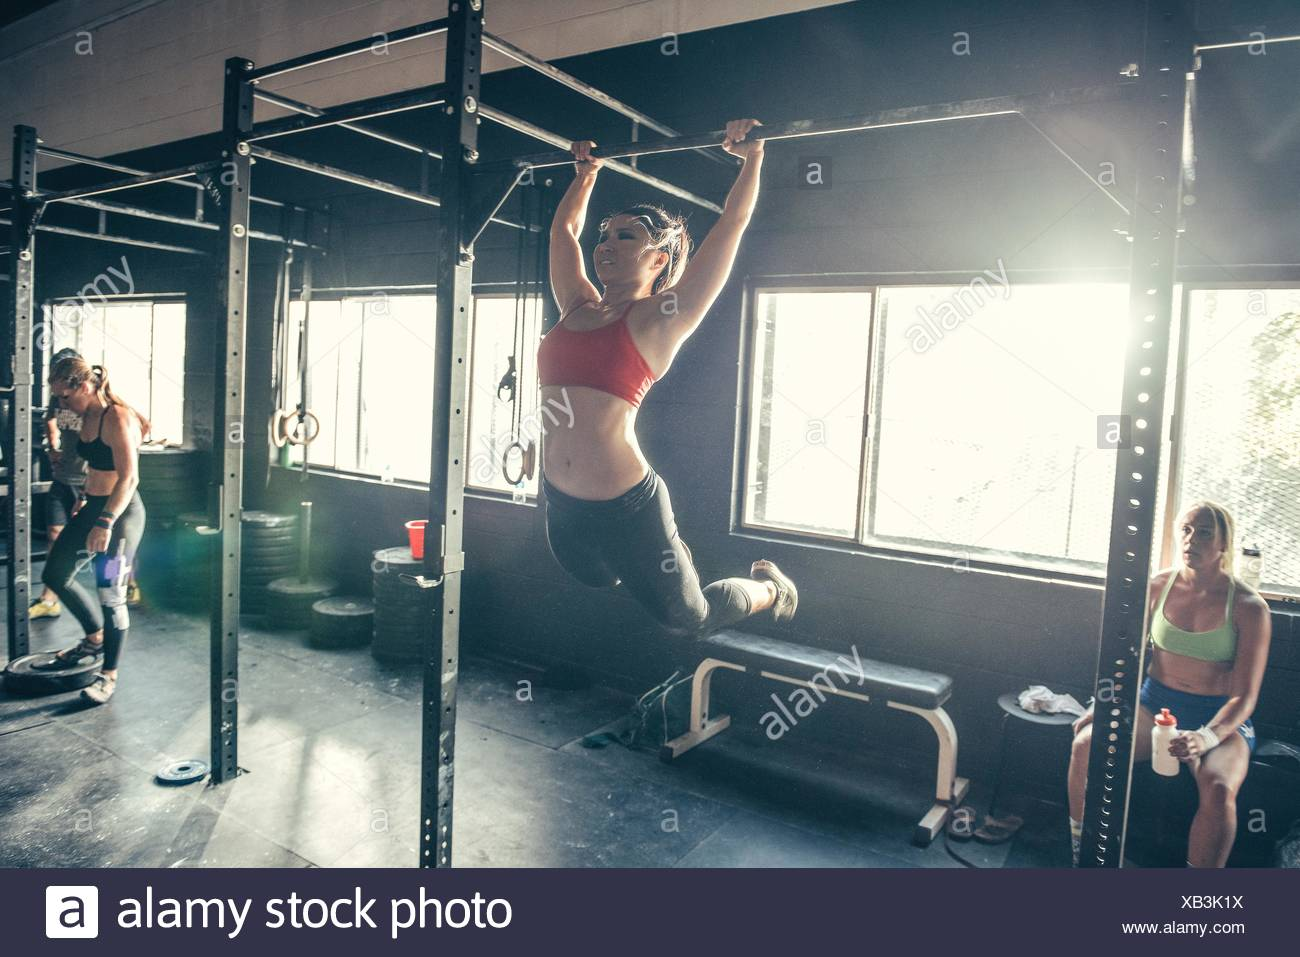 Woman swinging on exercise bar in gym - Stock Image